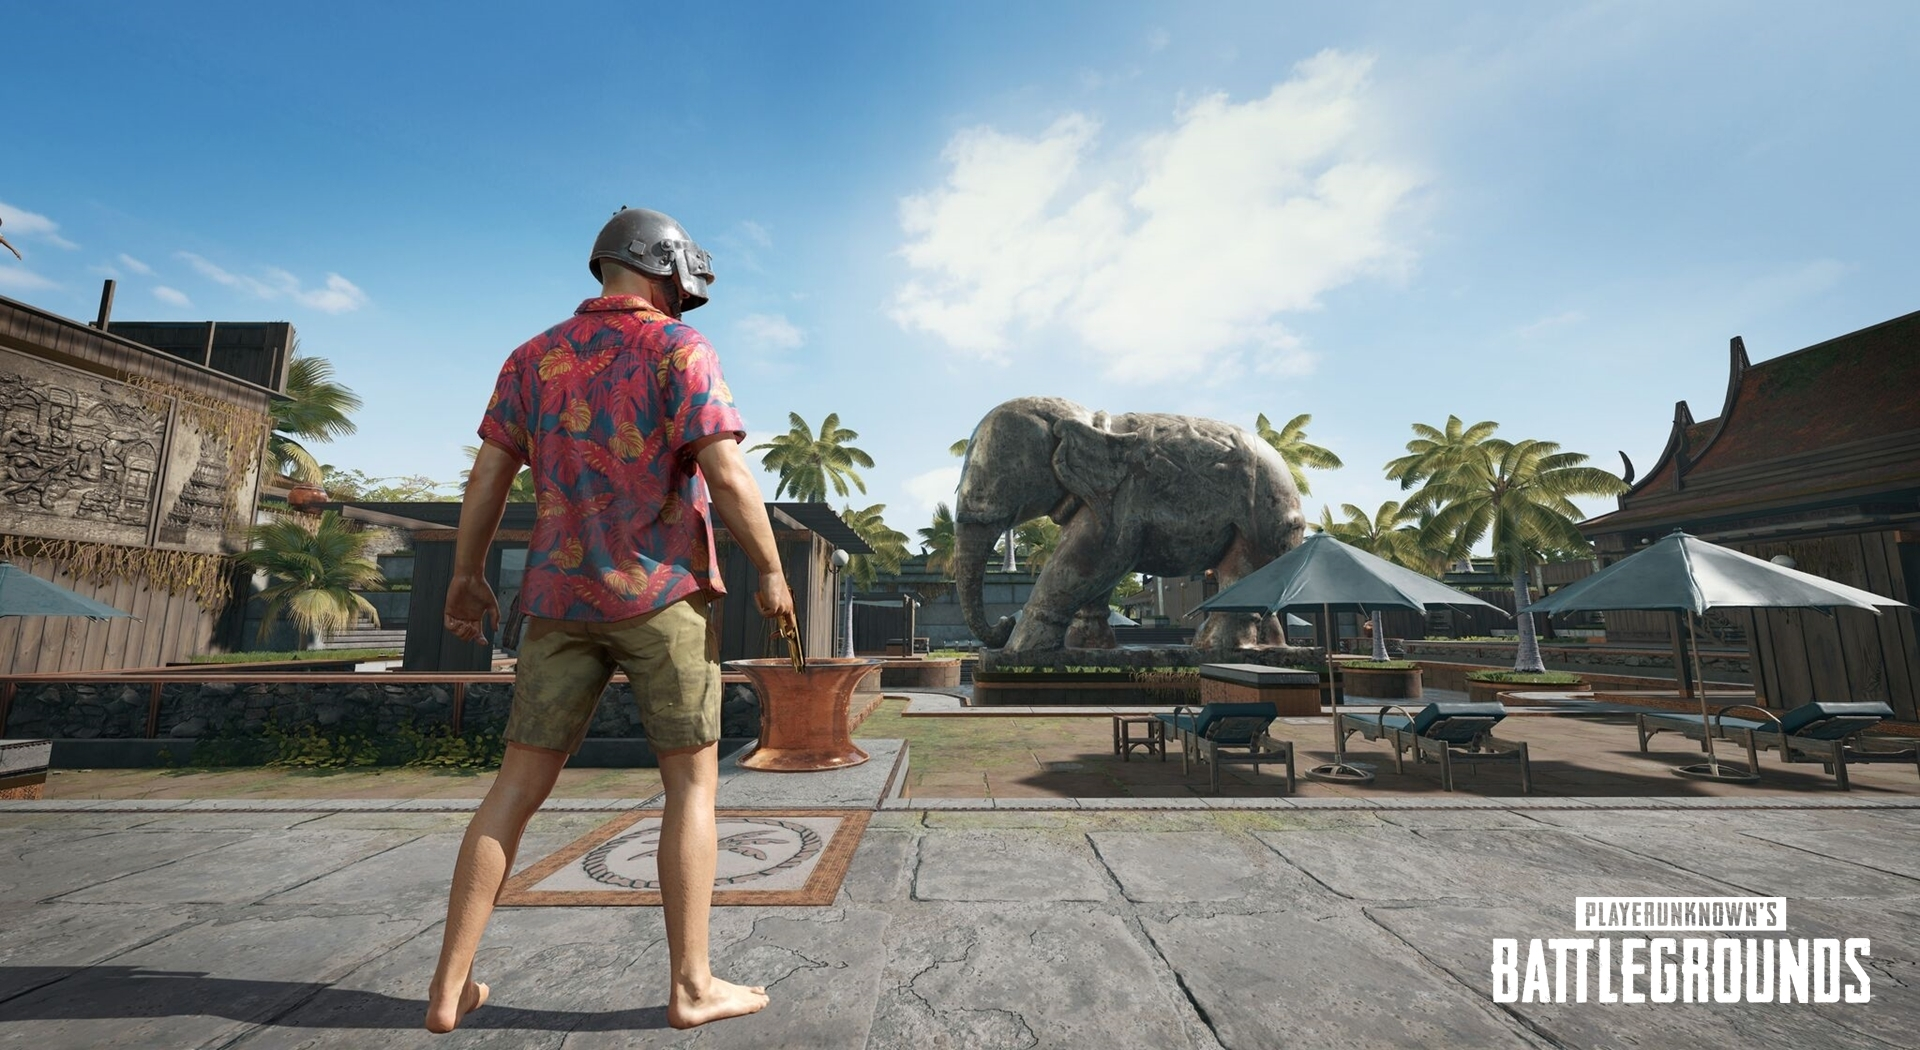 Action-Packed PlayerUnknown's Battlegrounds Map Sanhok Now